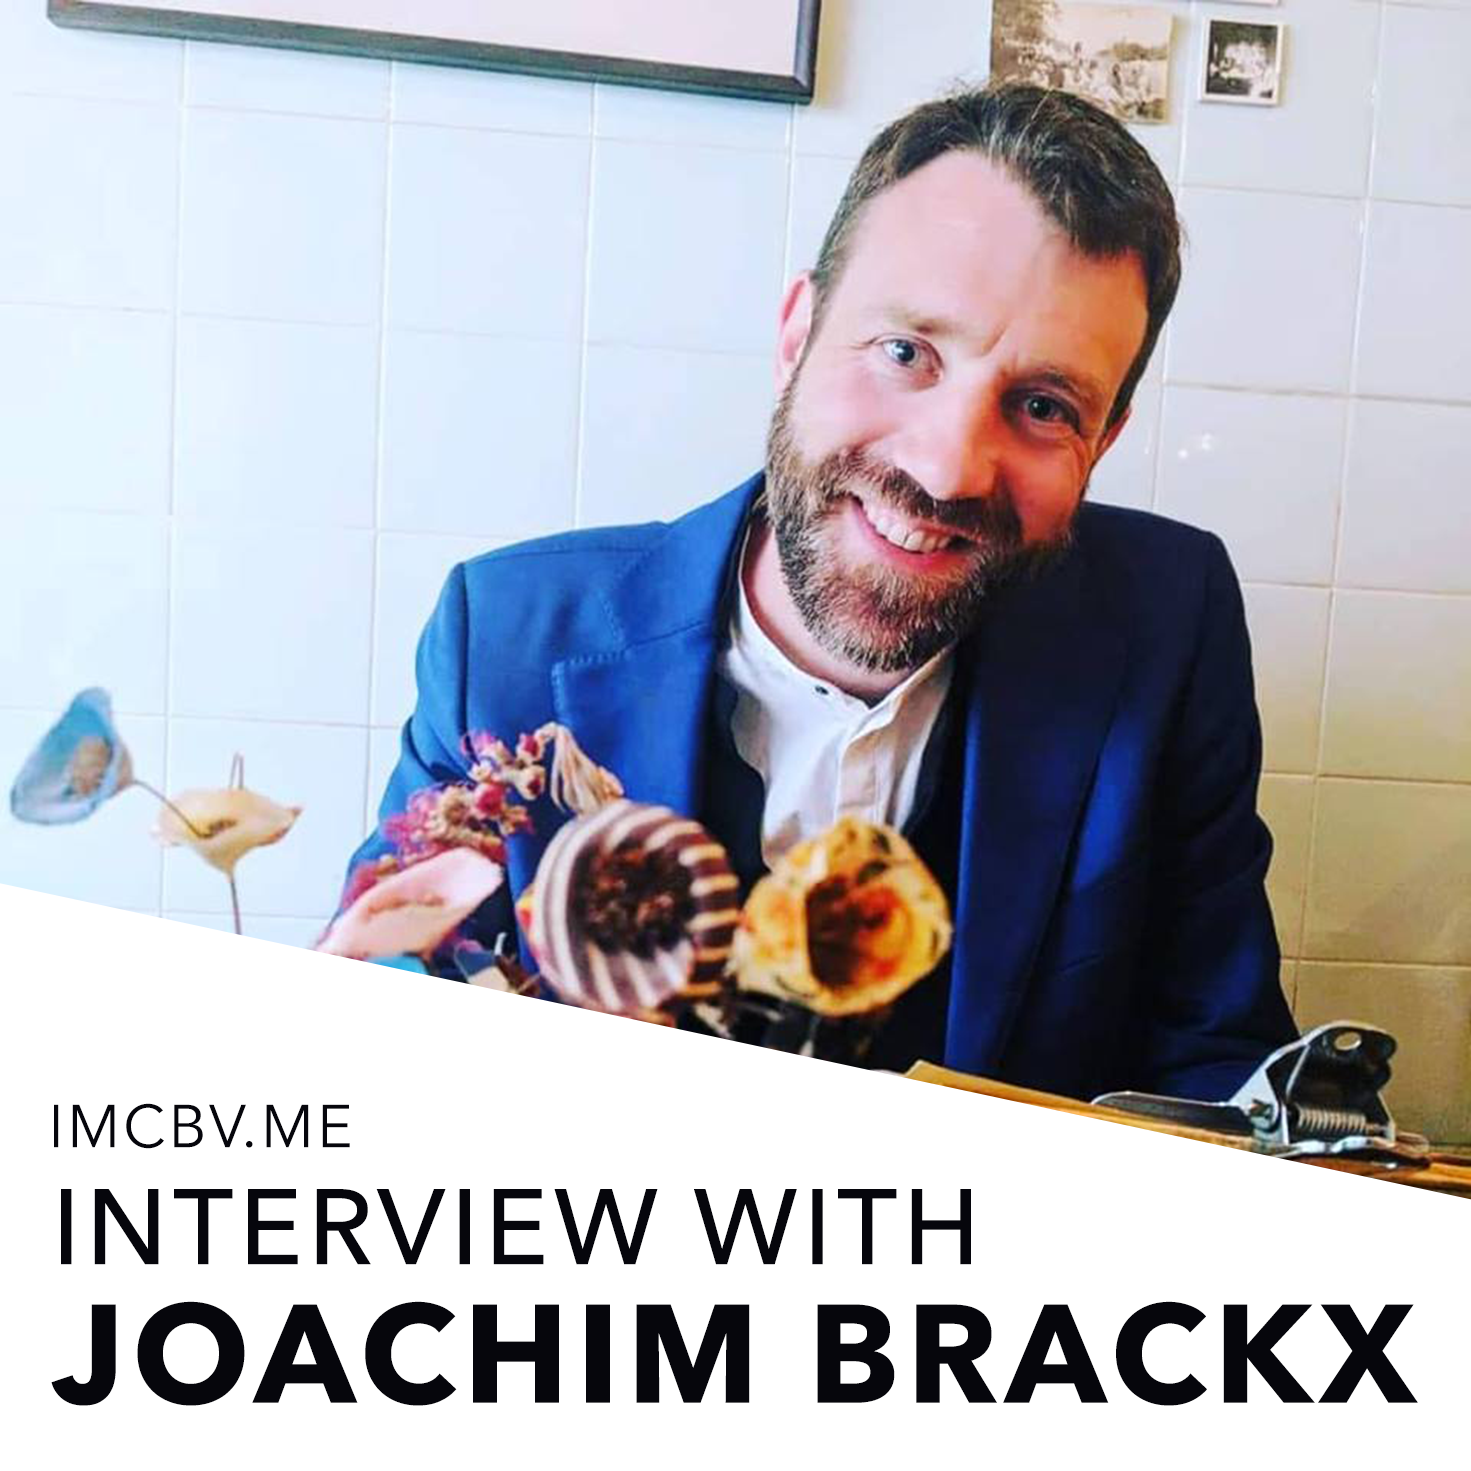 Interview with Joachim Brackx